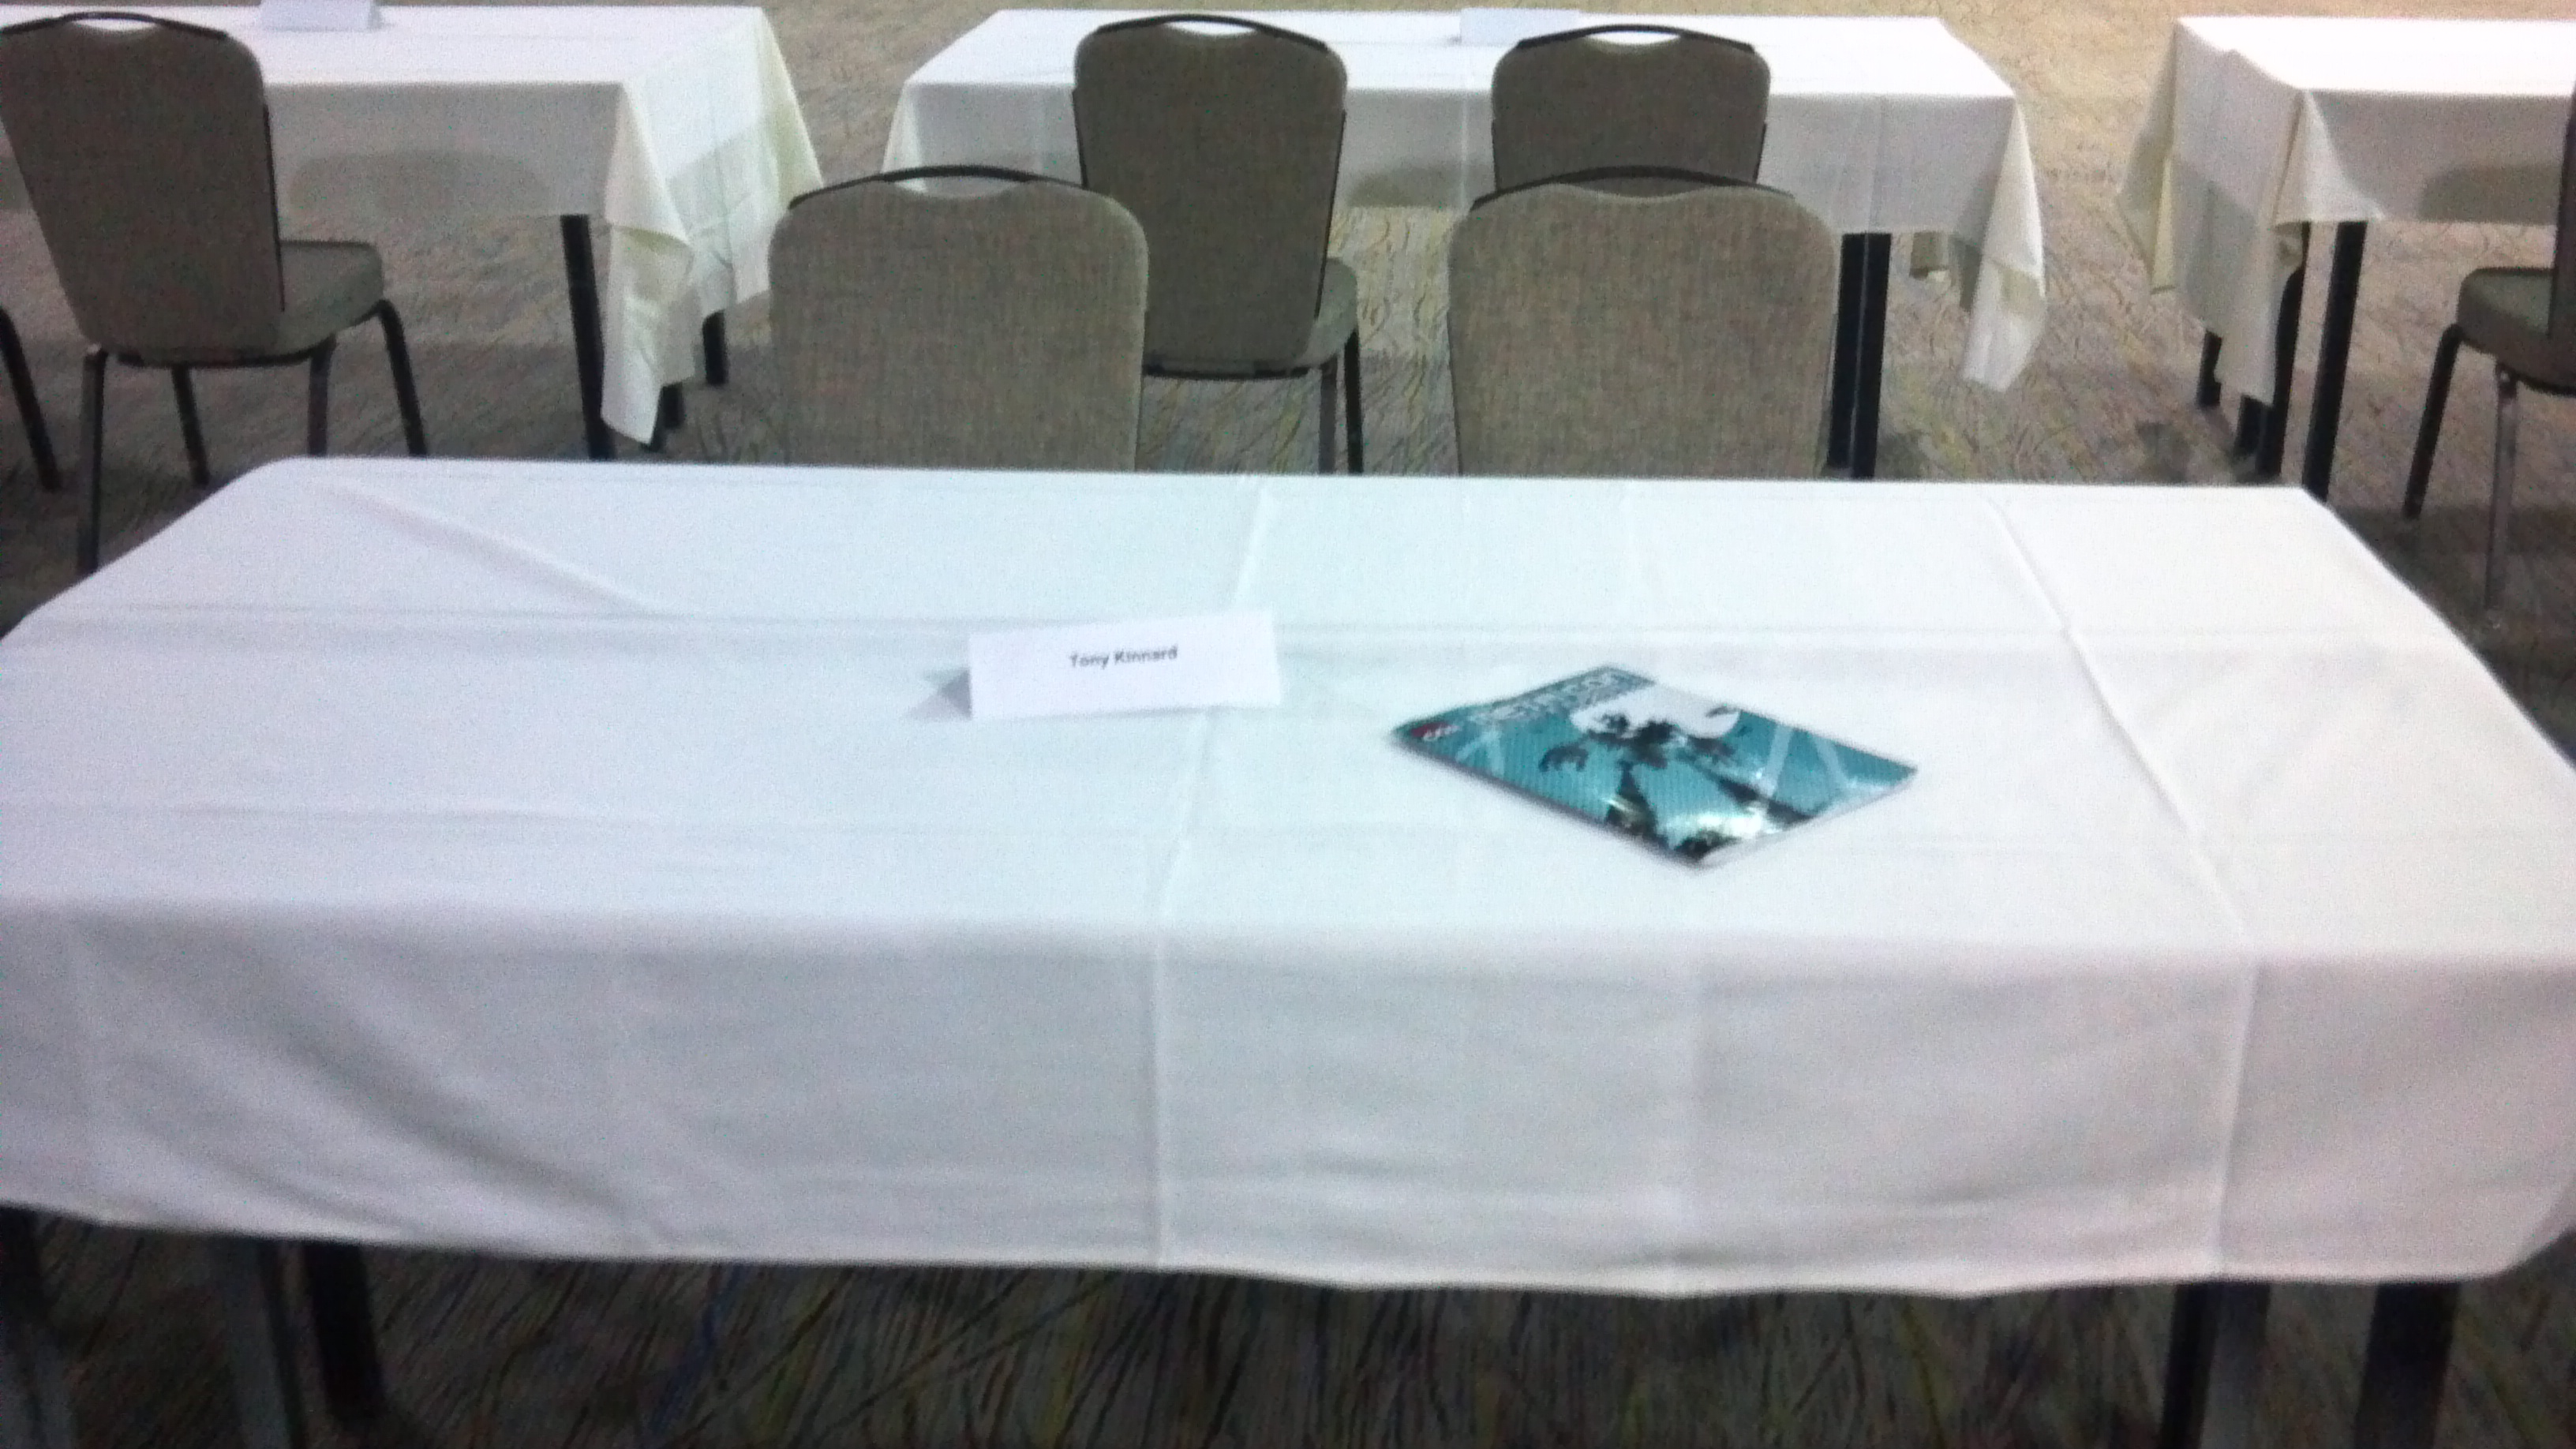 Table before setup